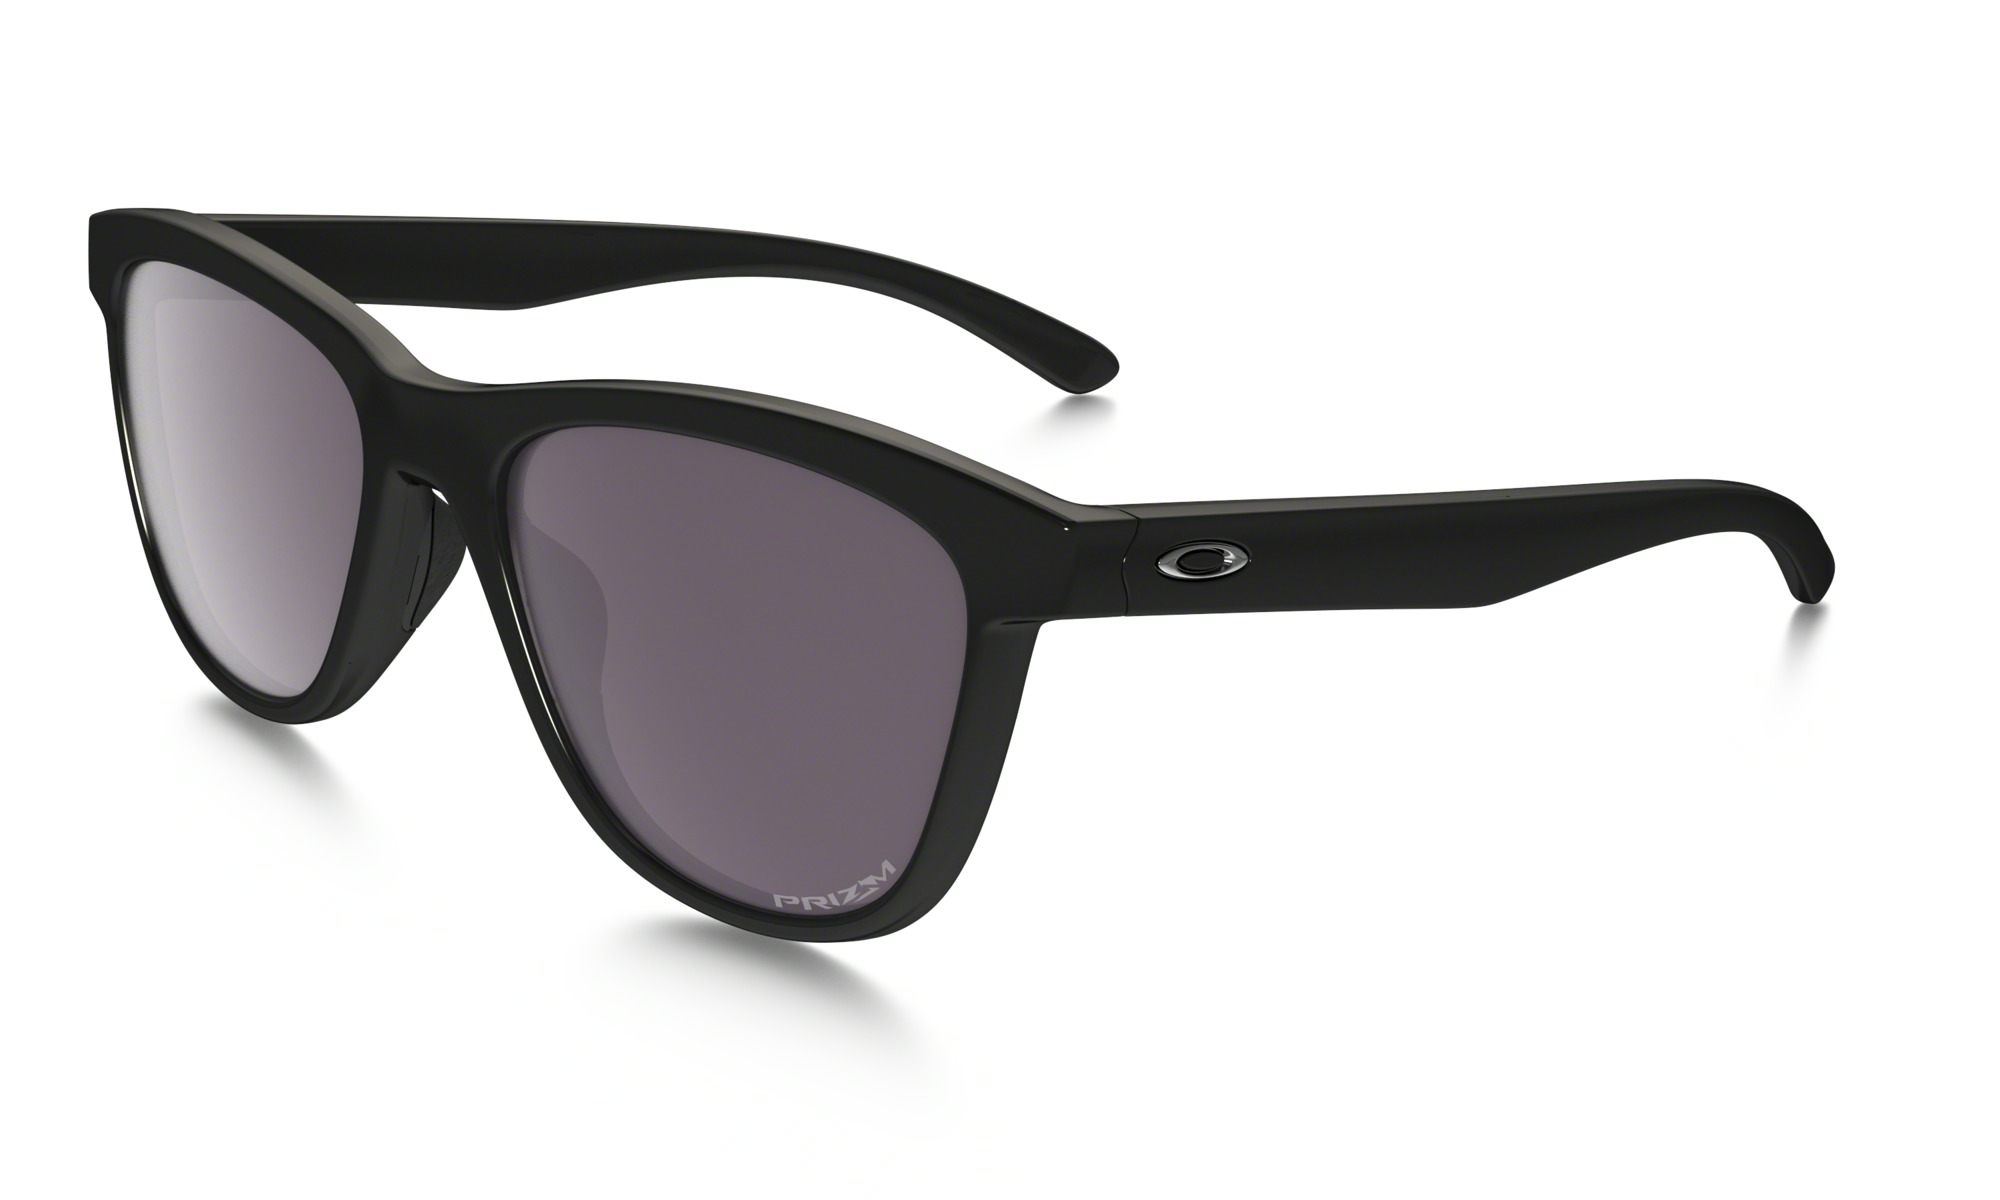 03bc088250c Oakley Moonlighter Prizm Daily Polarized Sunglasses. Full Screen